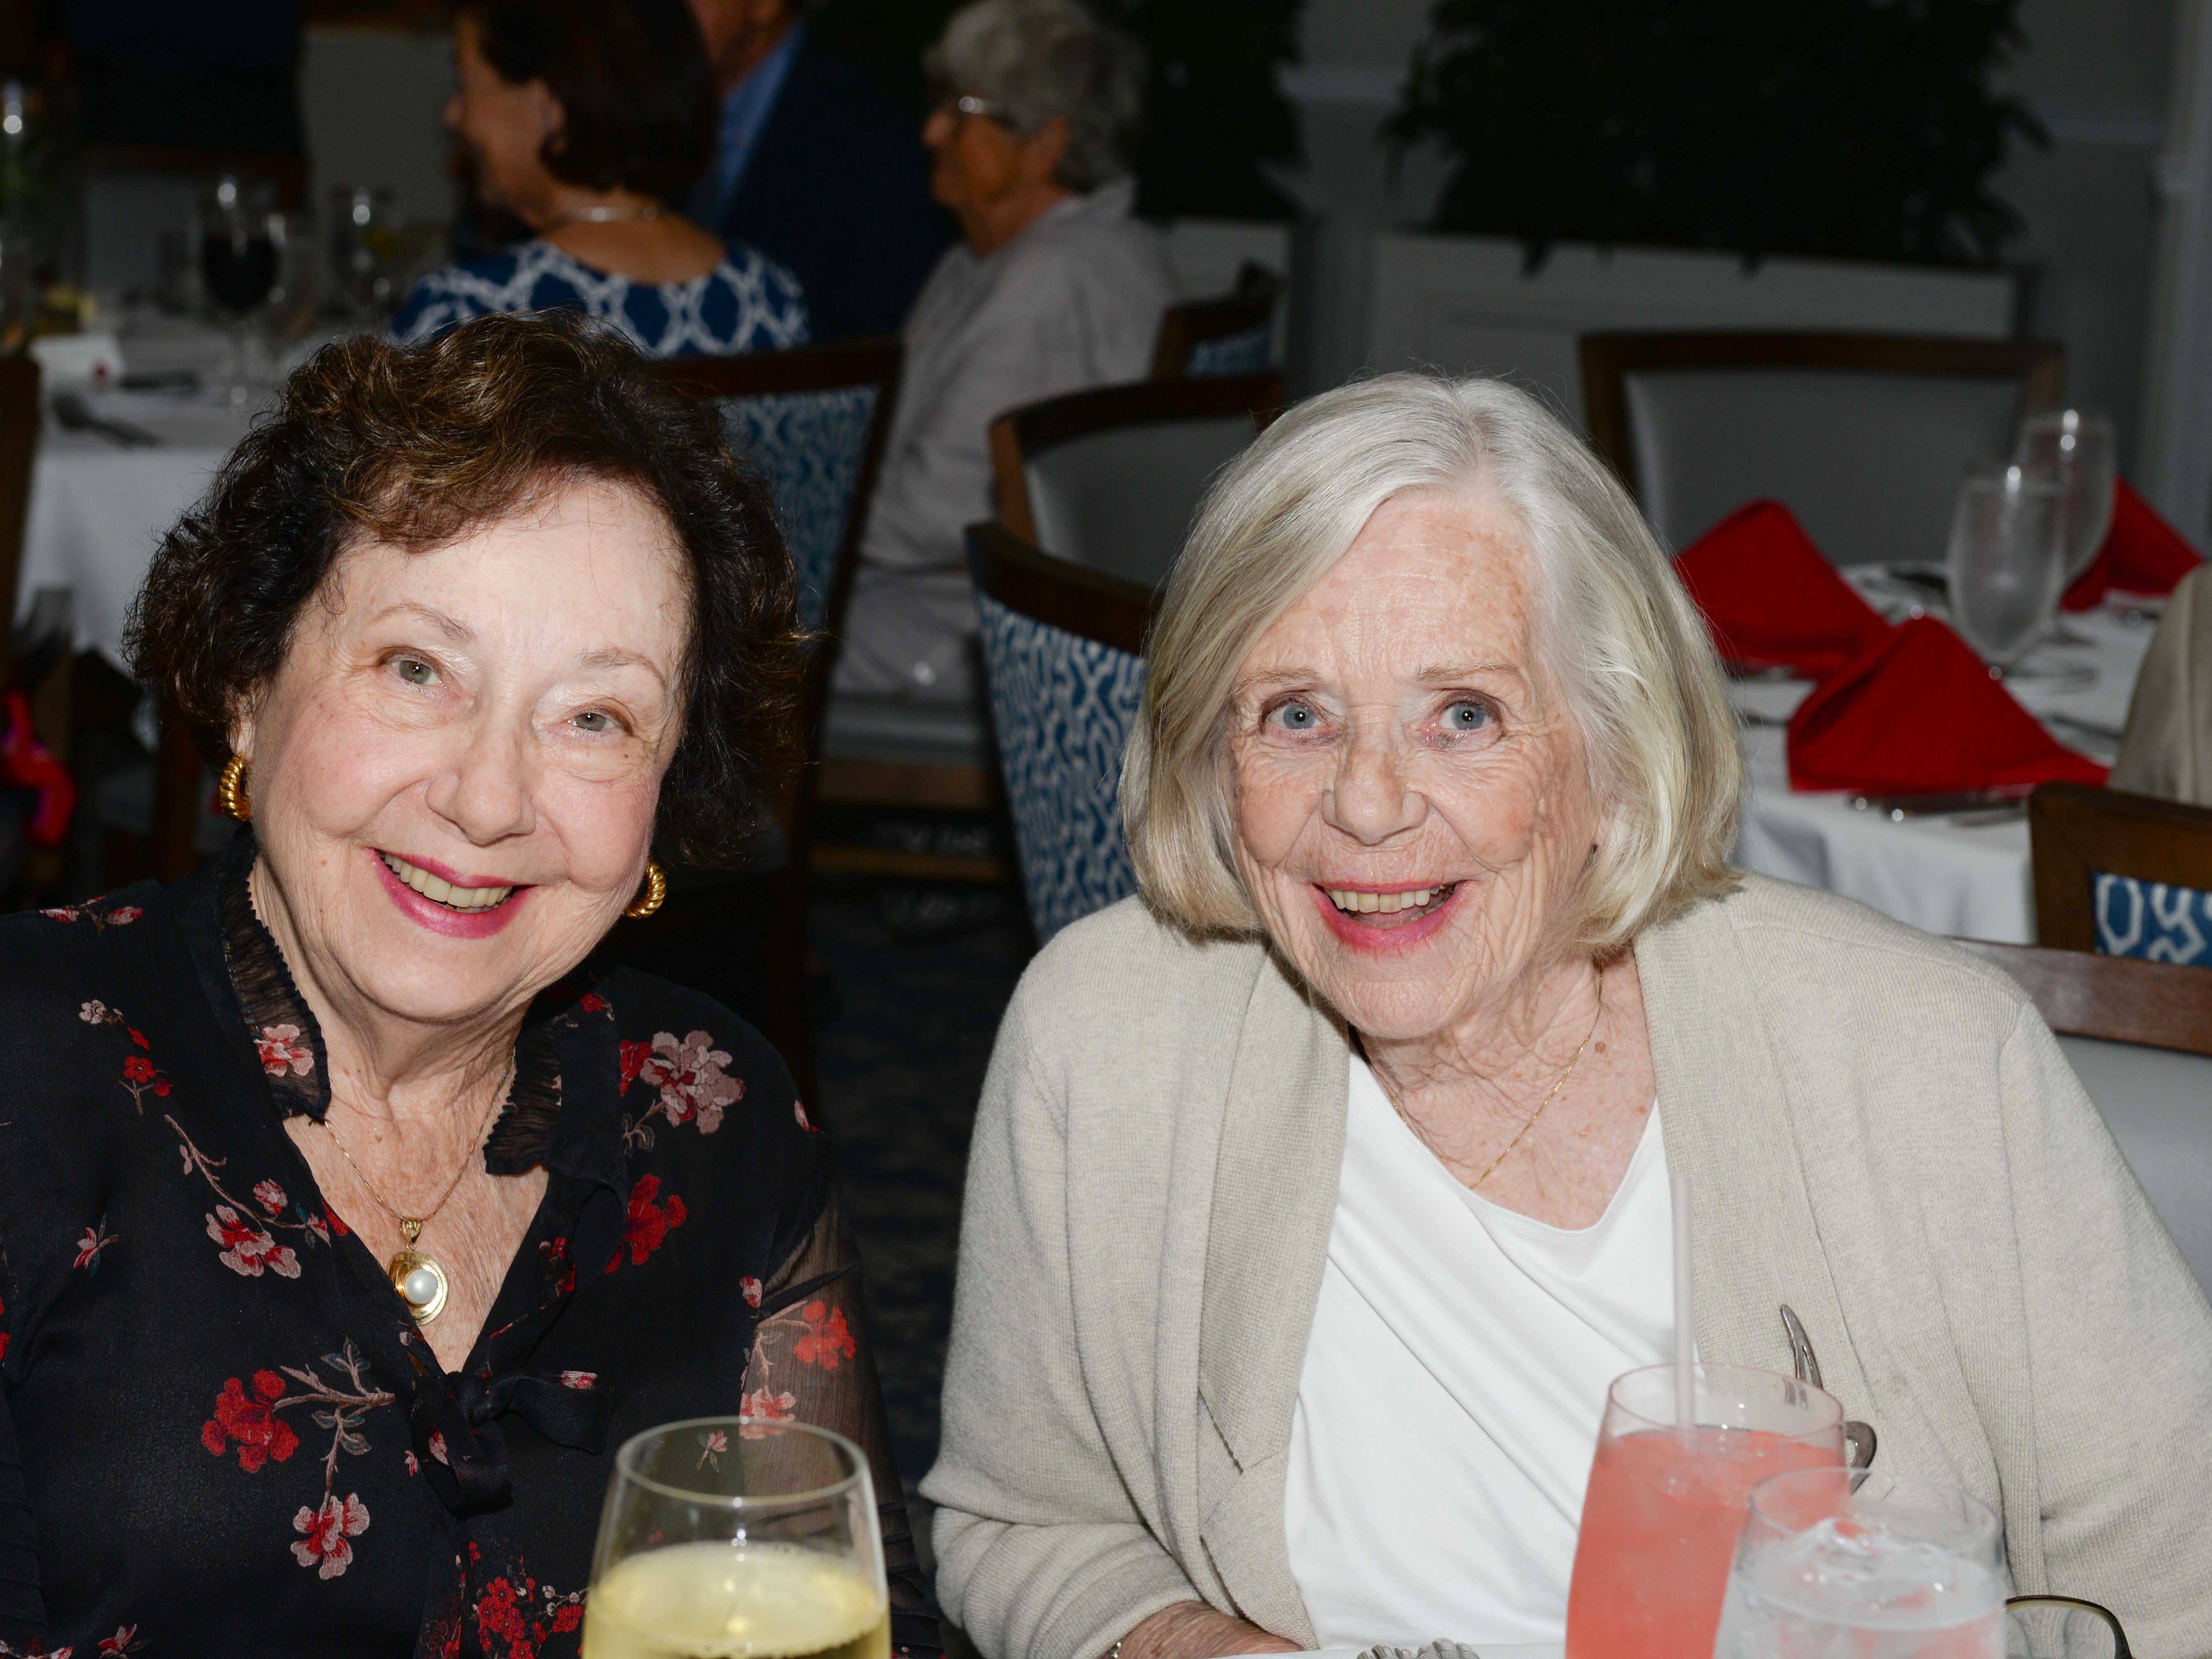 JoAnne Enterline, left, and Barbara Volin at the Stuart Friends of the Atlantic Classical Orchestra's Meet the Artist Dinner at the Stuart Yacht & Country Club.